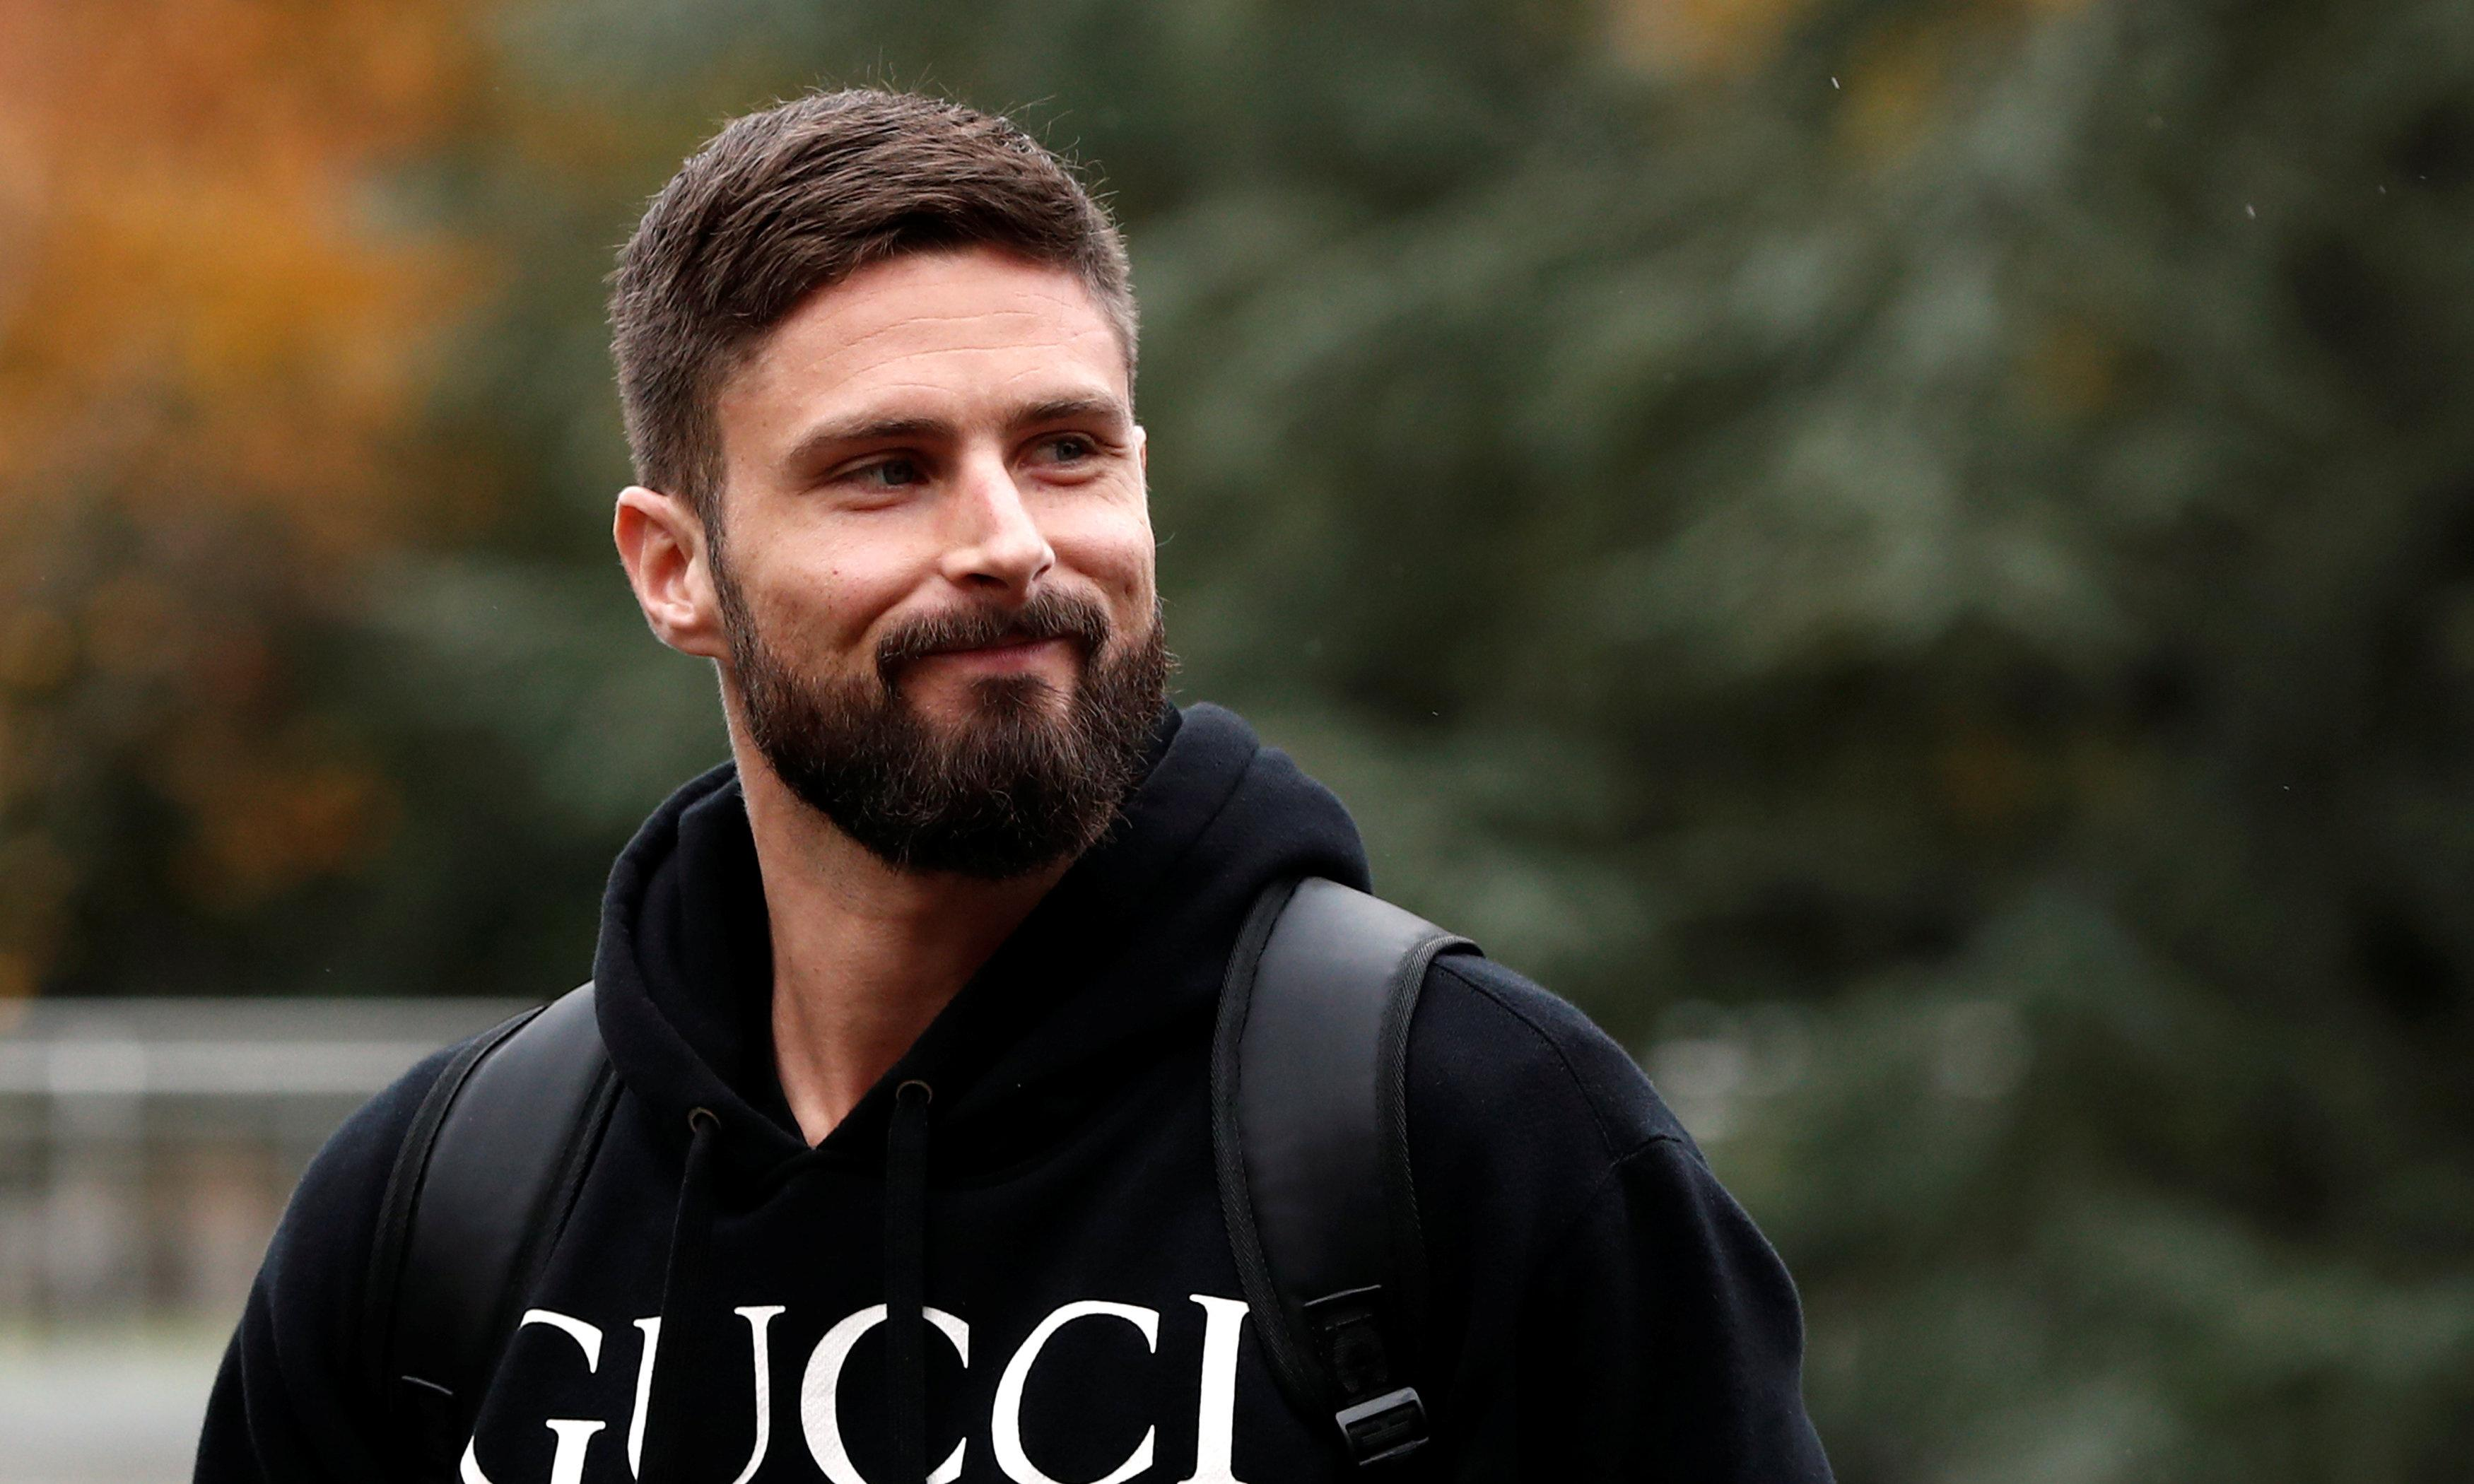 Olivier Giroud says it is 'impossible' to show homosexuality in football